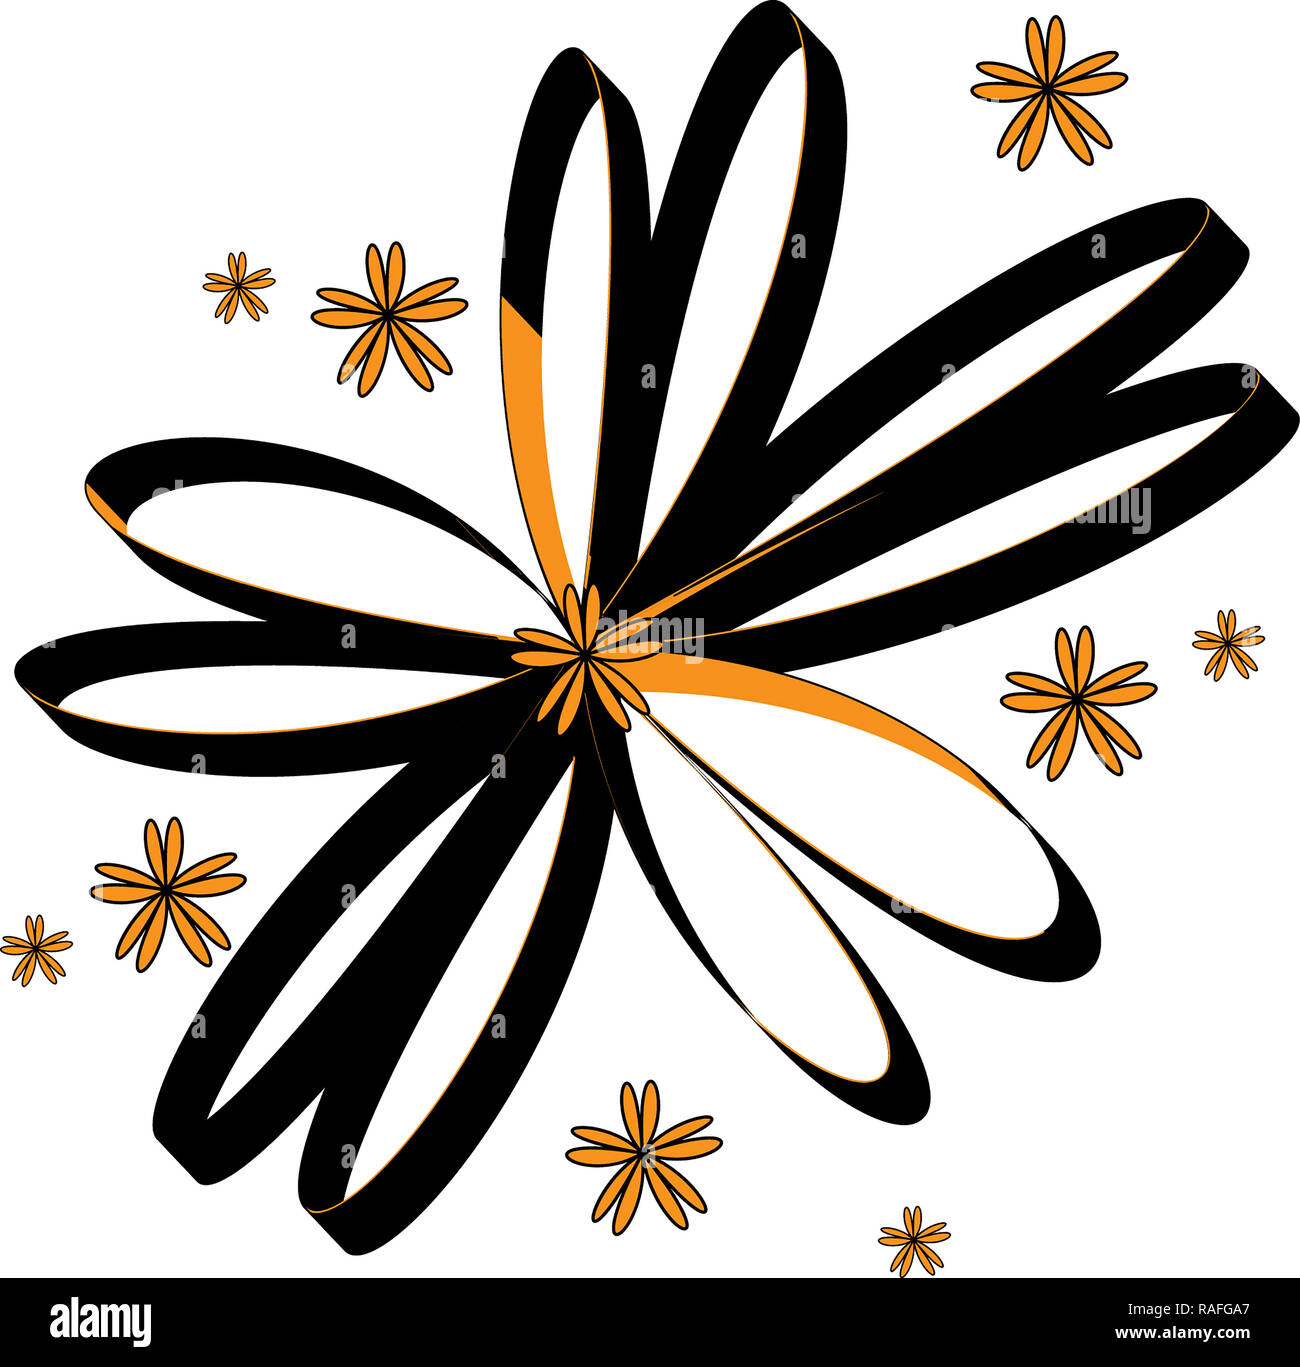 illustration ties forming a flower with 3d image in black and golden yellow color with white background - Stock Image